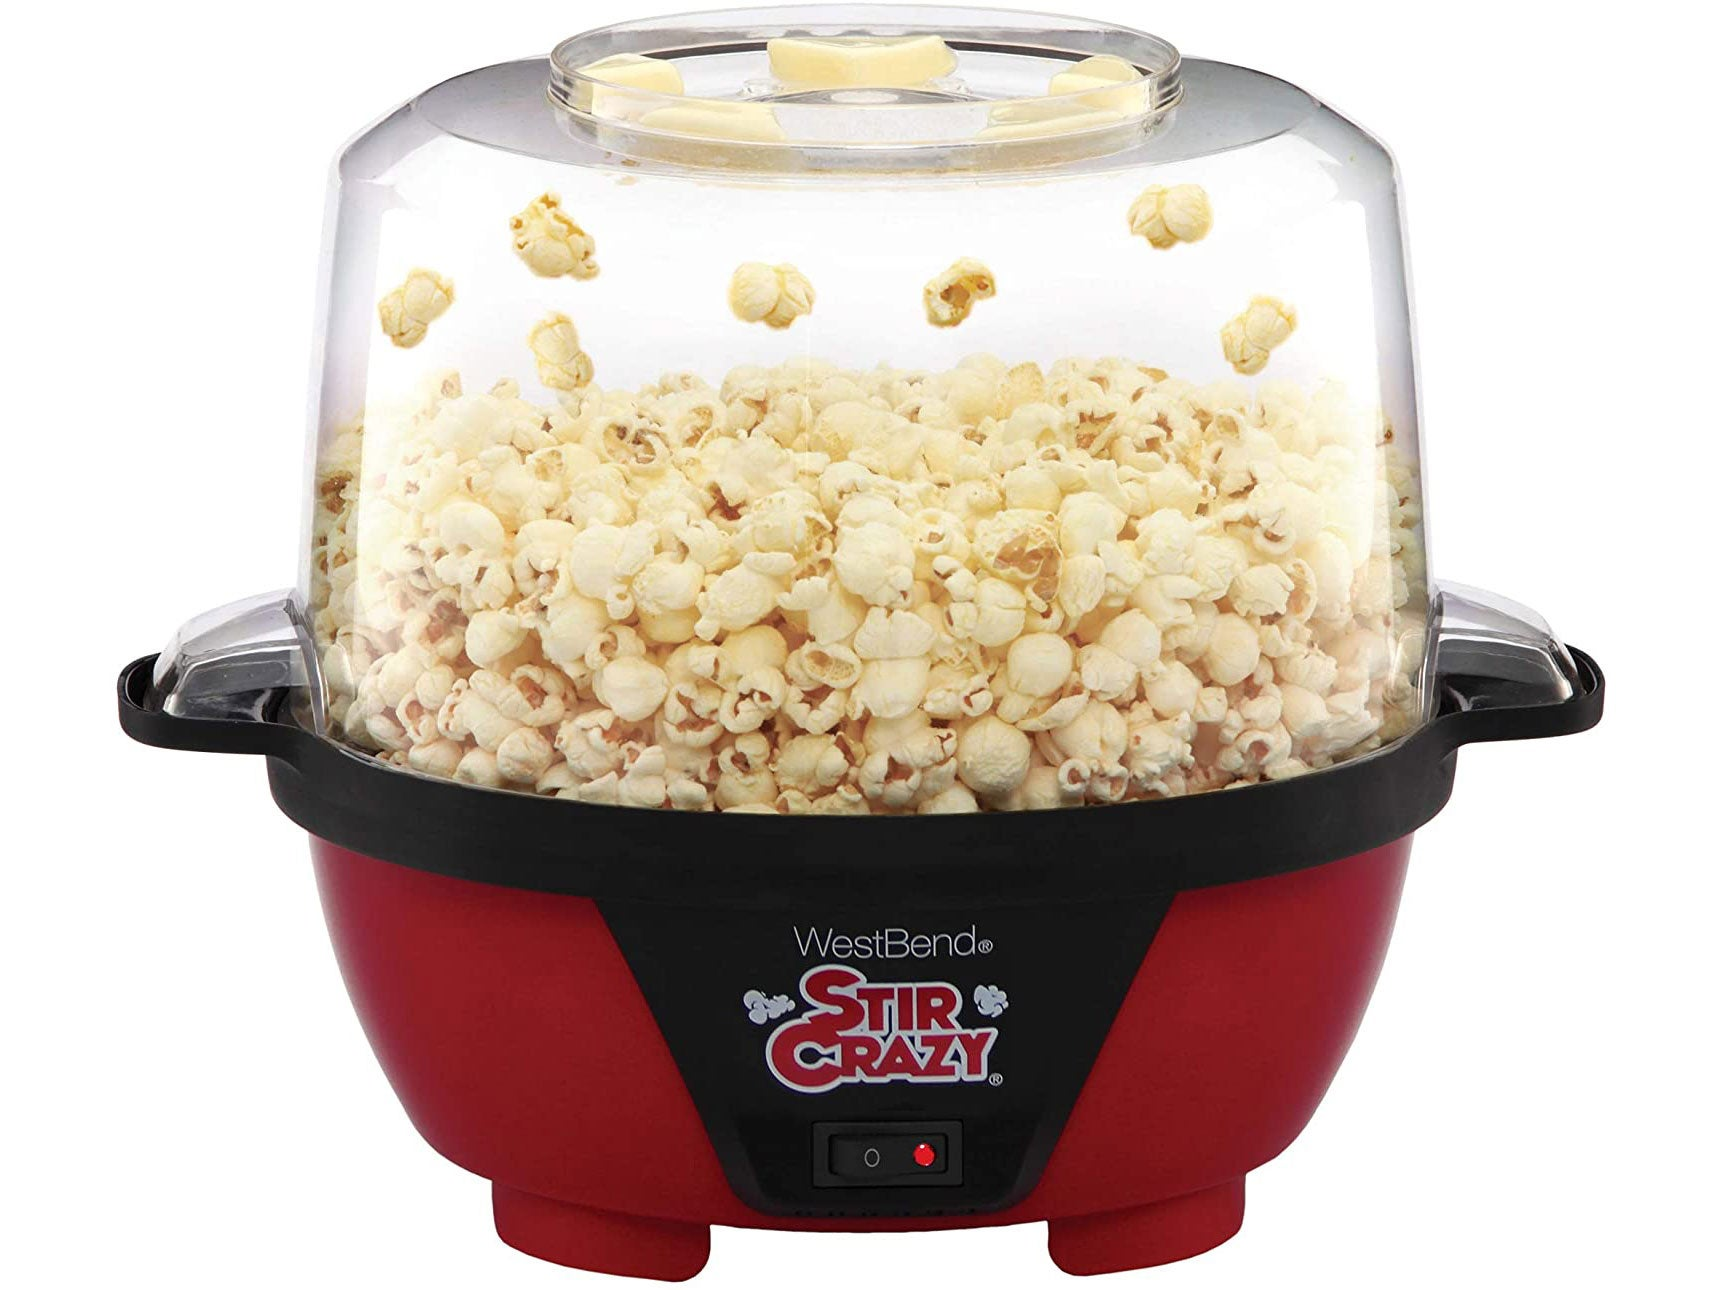 West Bend 82505 Stir Crazy Electric Hot Oil Popcorn Popper